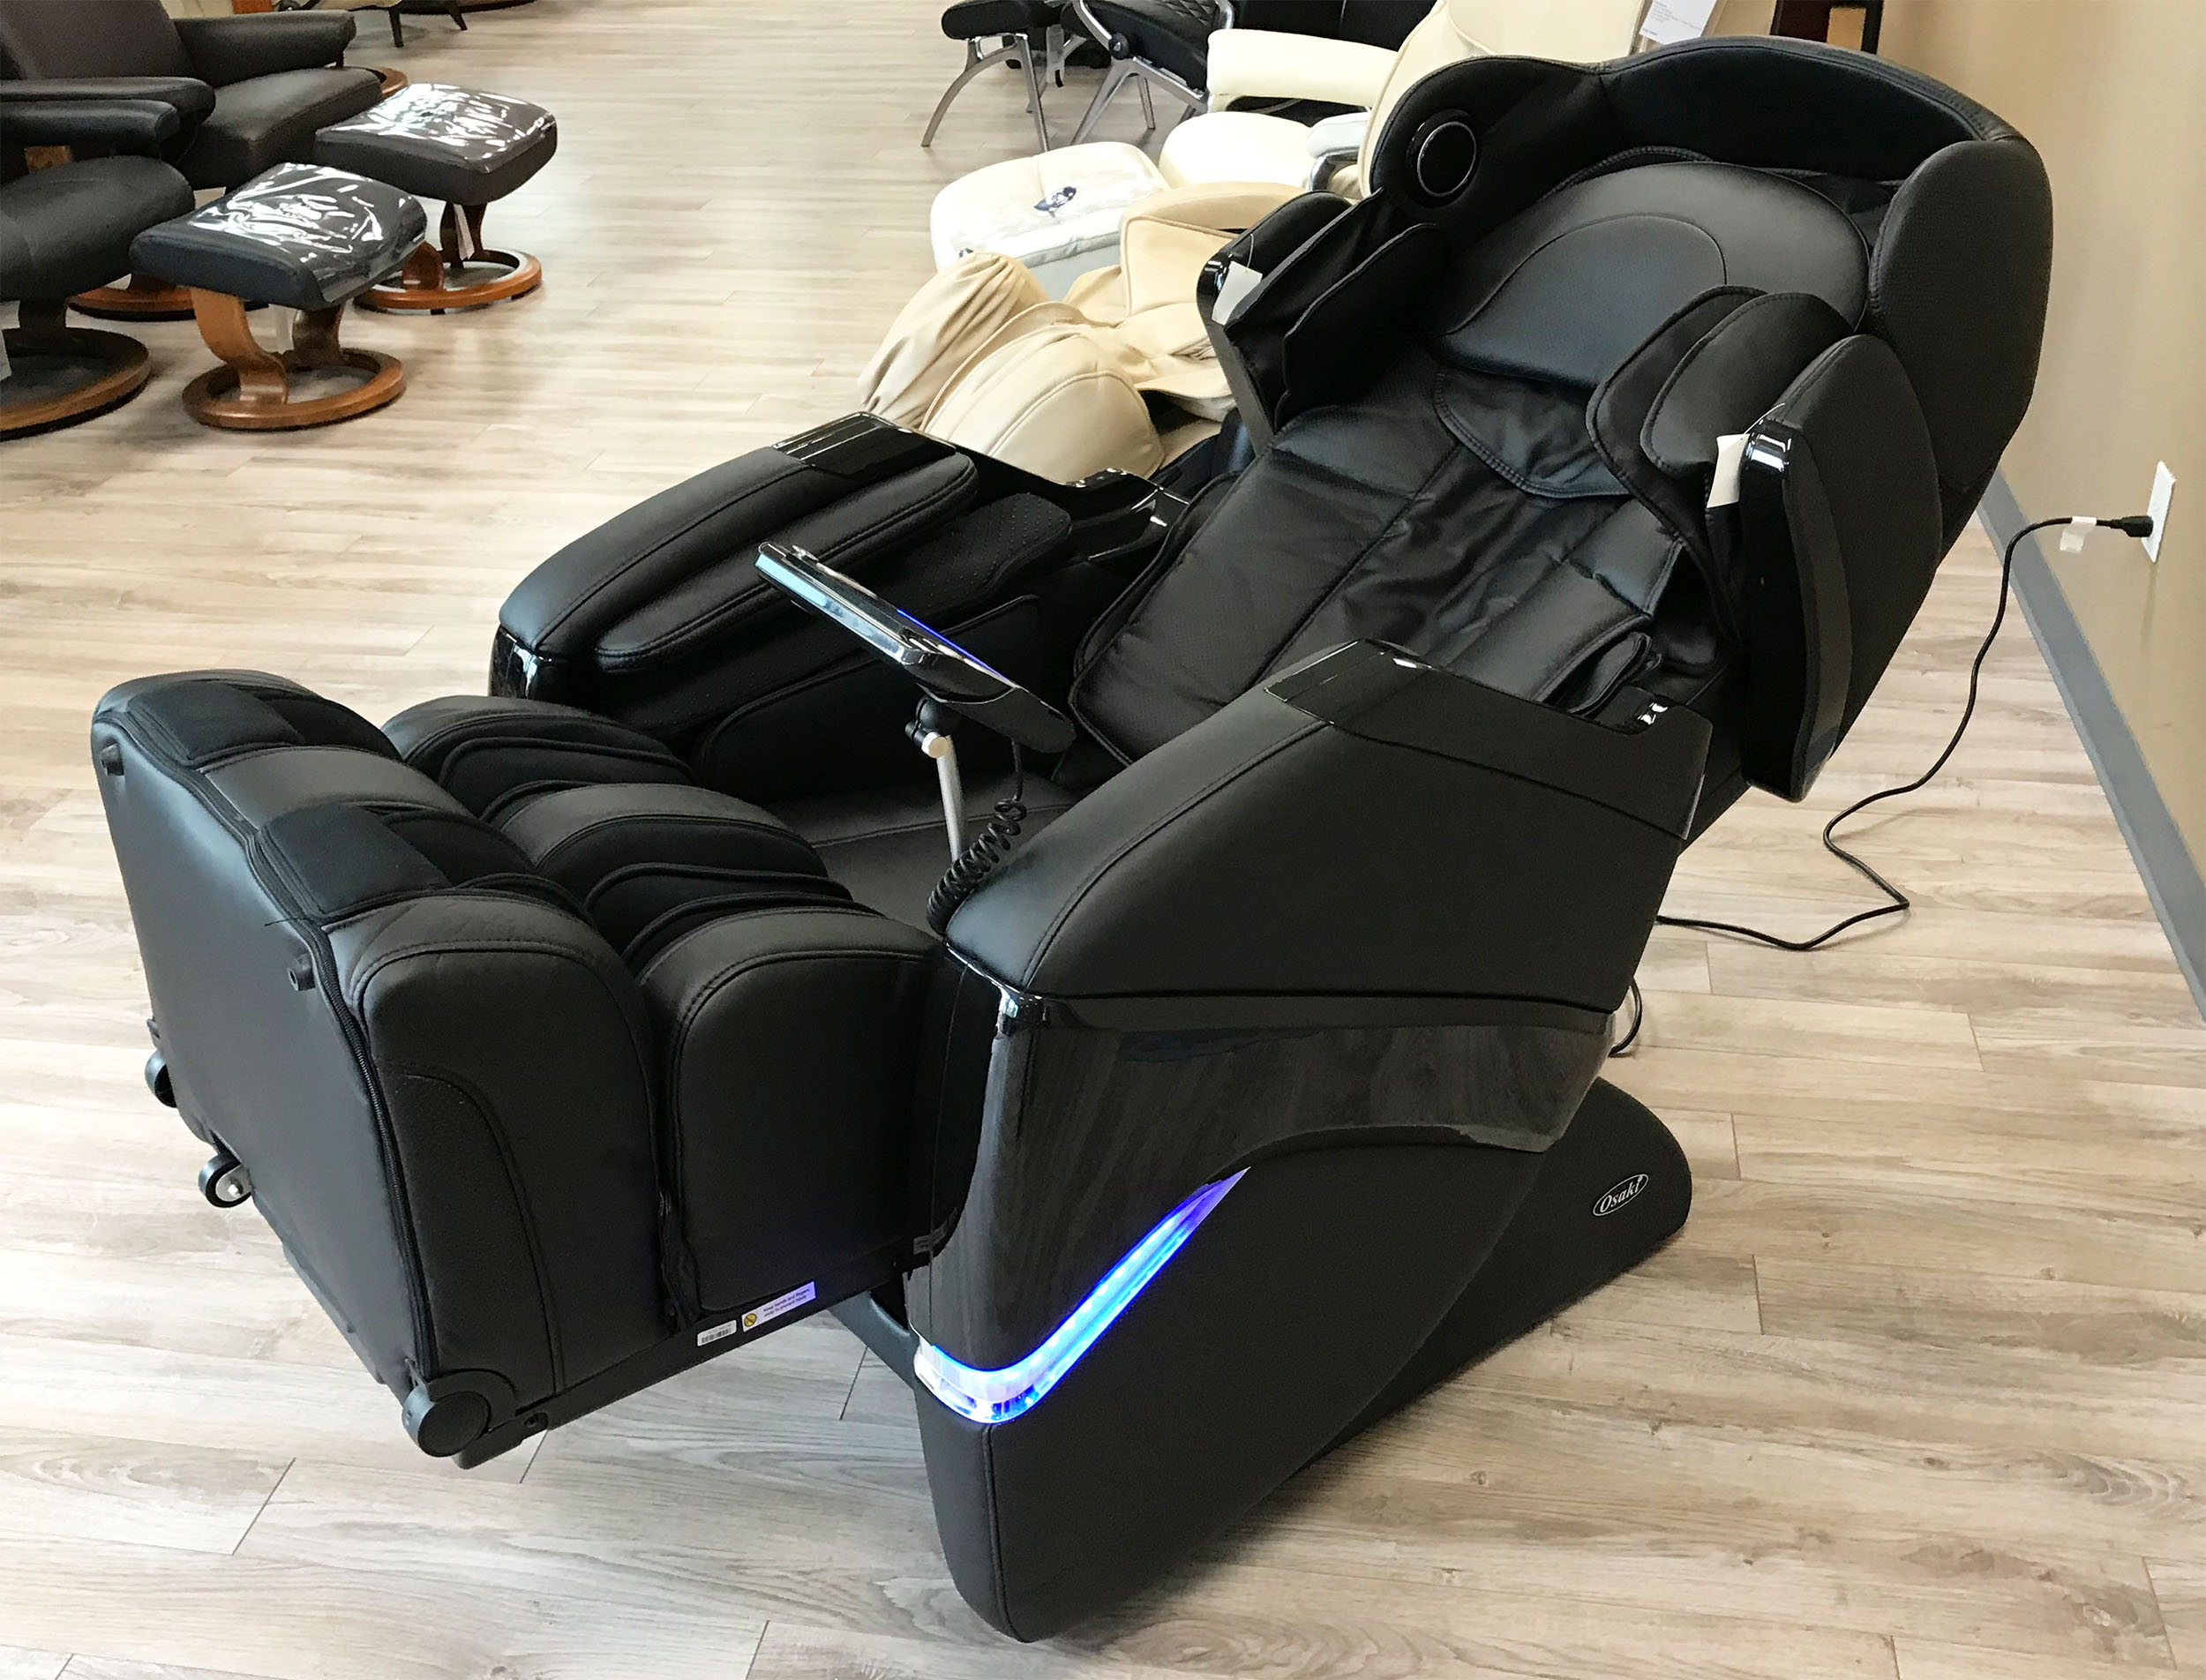 osaki os 3d cyber pro massage chair crayola table and chairs zero gravity recliner